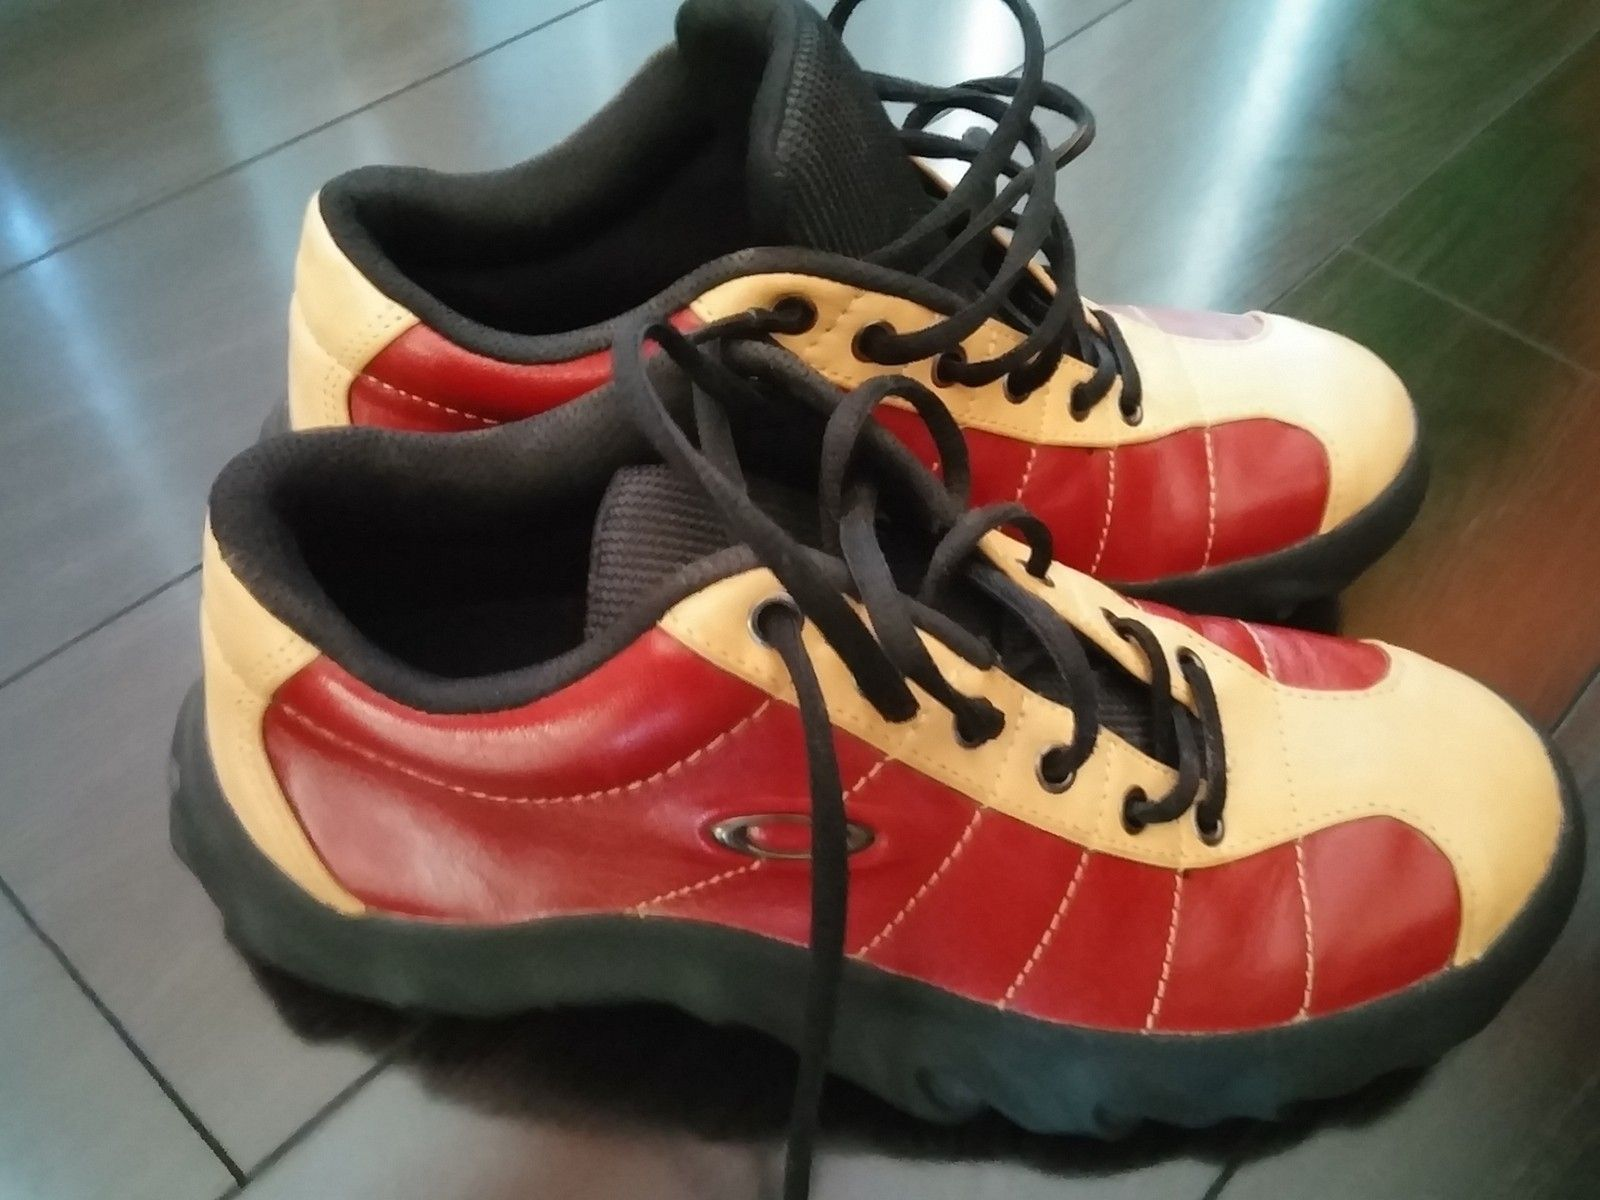 Oakley Saws and Crank Shoes 10.0 - 20150210_115408.jpg